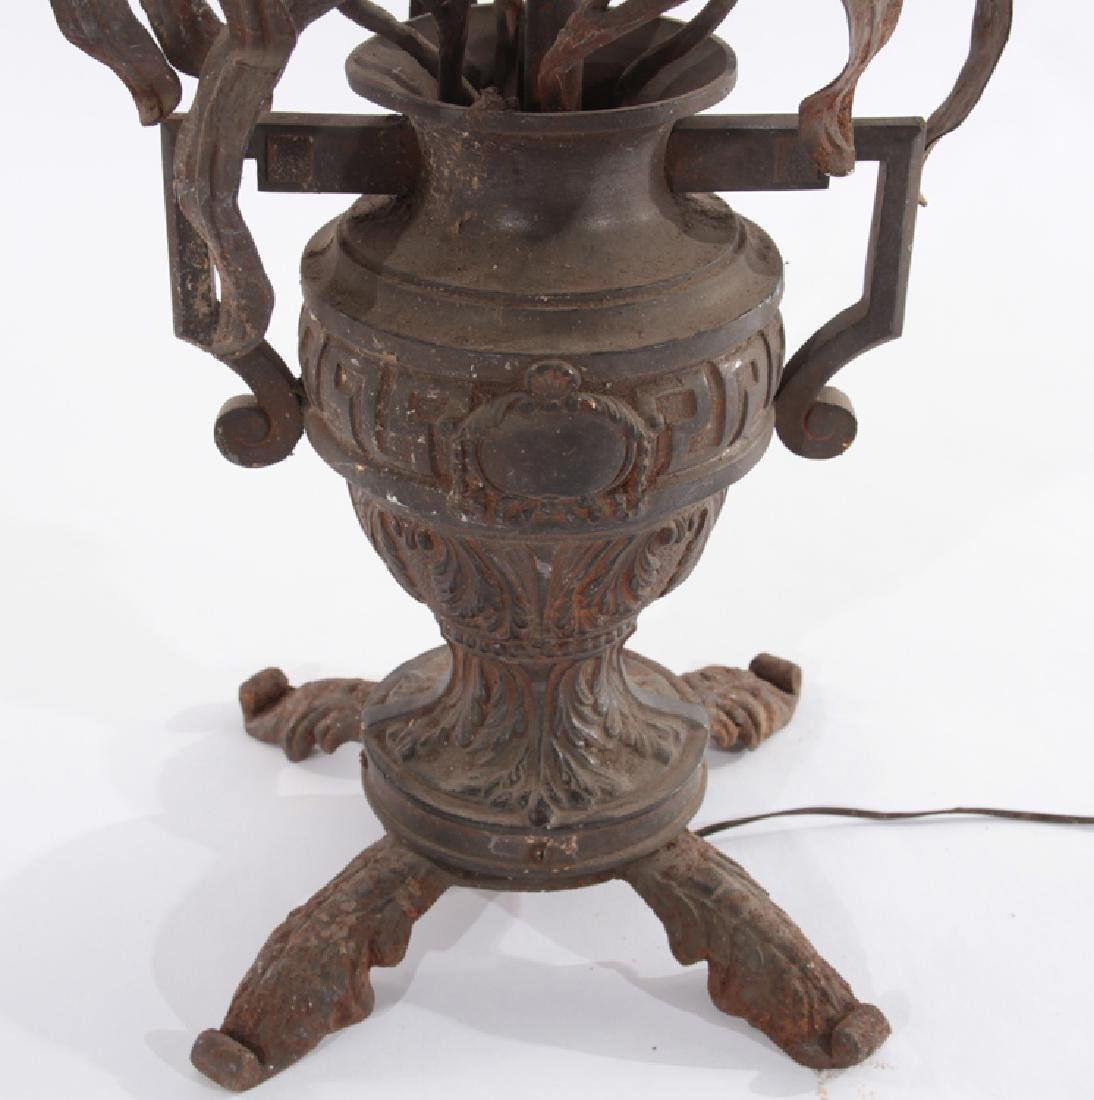 WROUGHT IRON TABLE LAMP ORNATE URN WITH HANDLES - 5